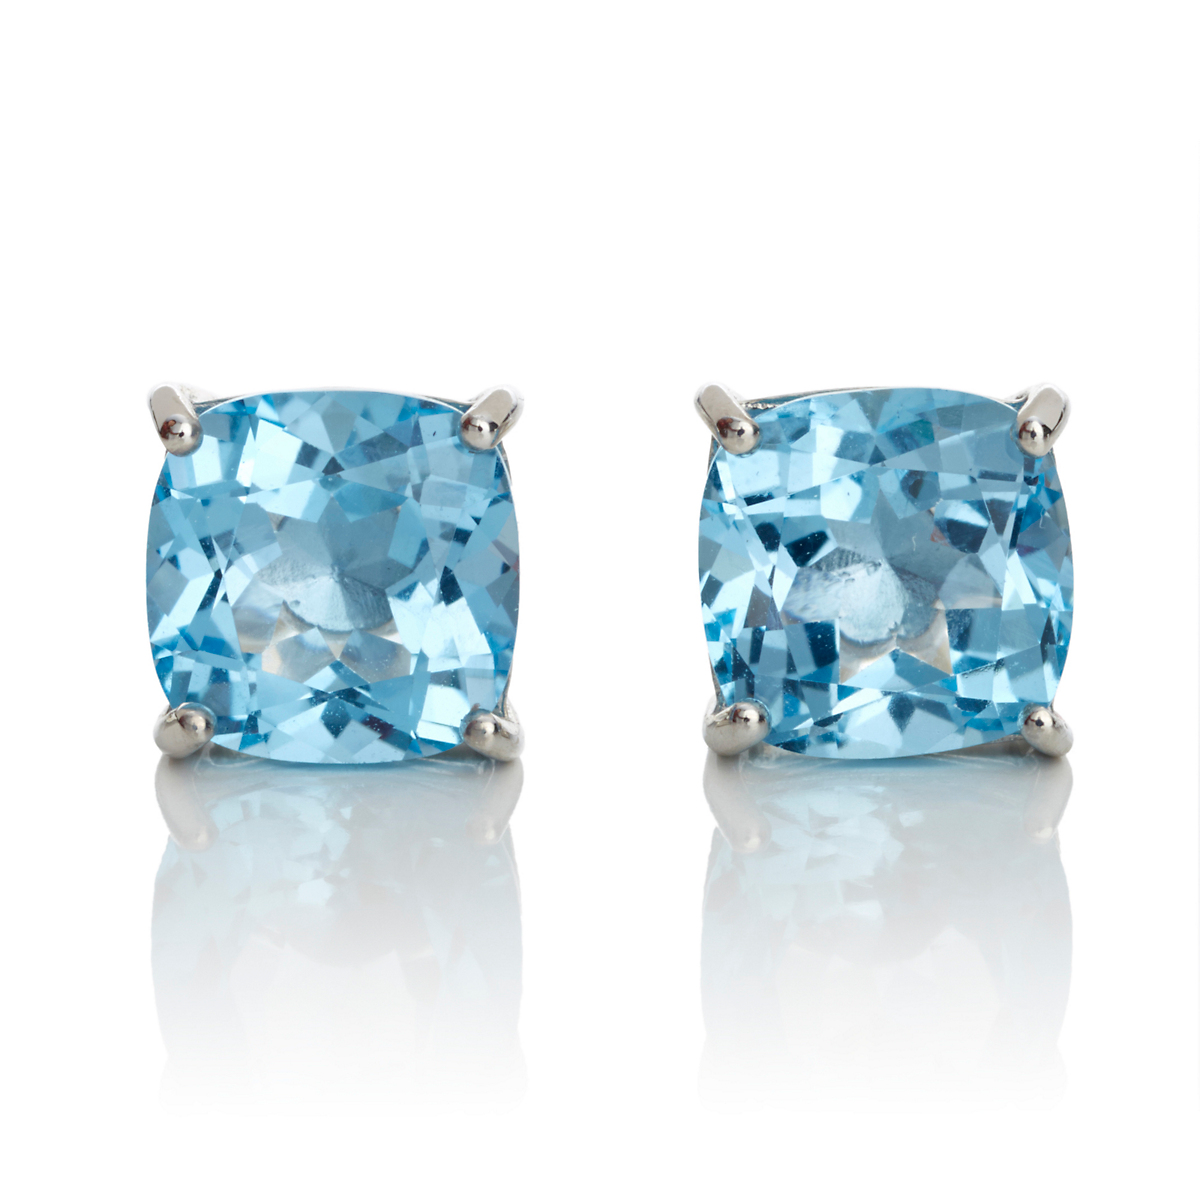 Gump's Faceted Blue Topaz Cushion Silver Stud Earrings